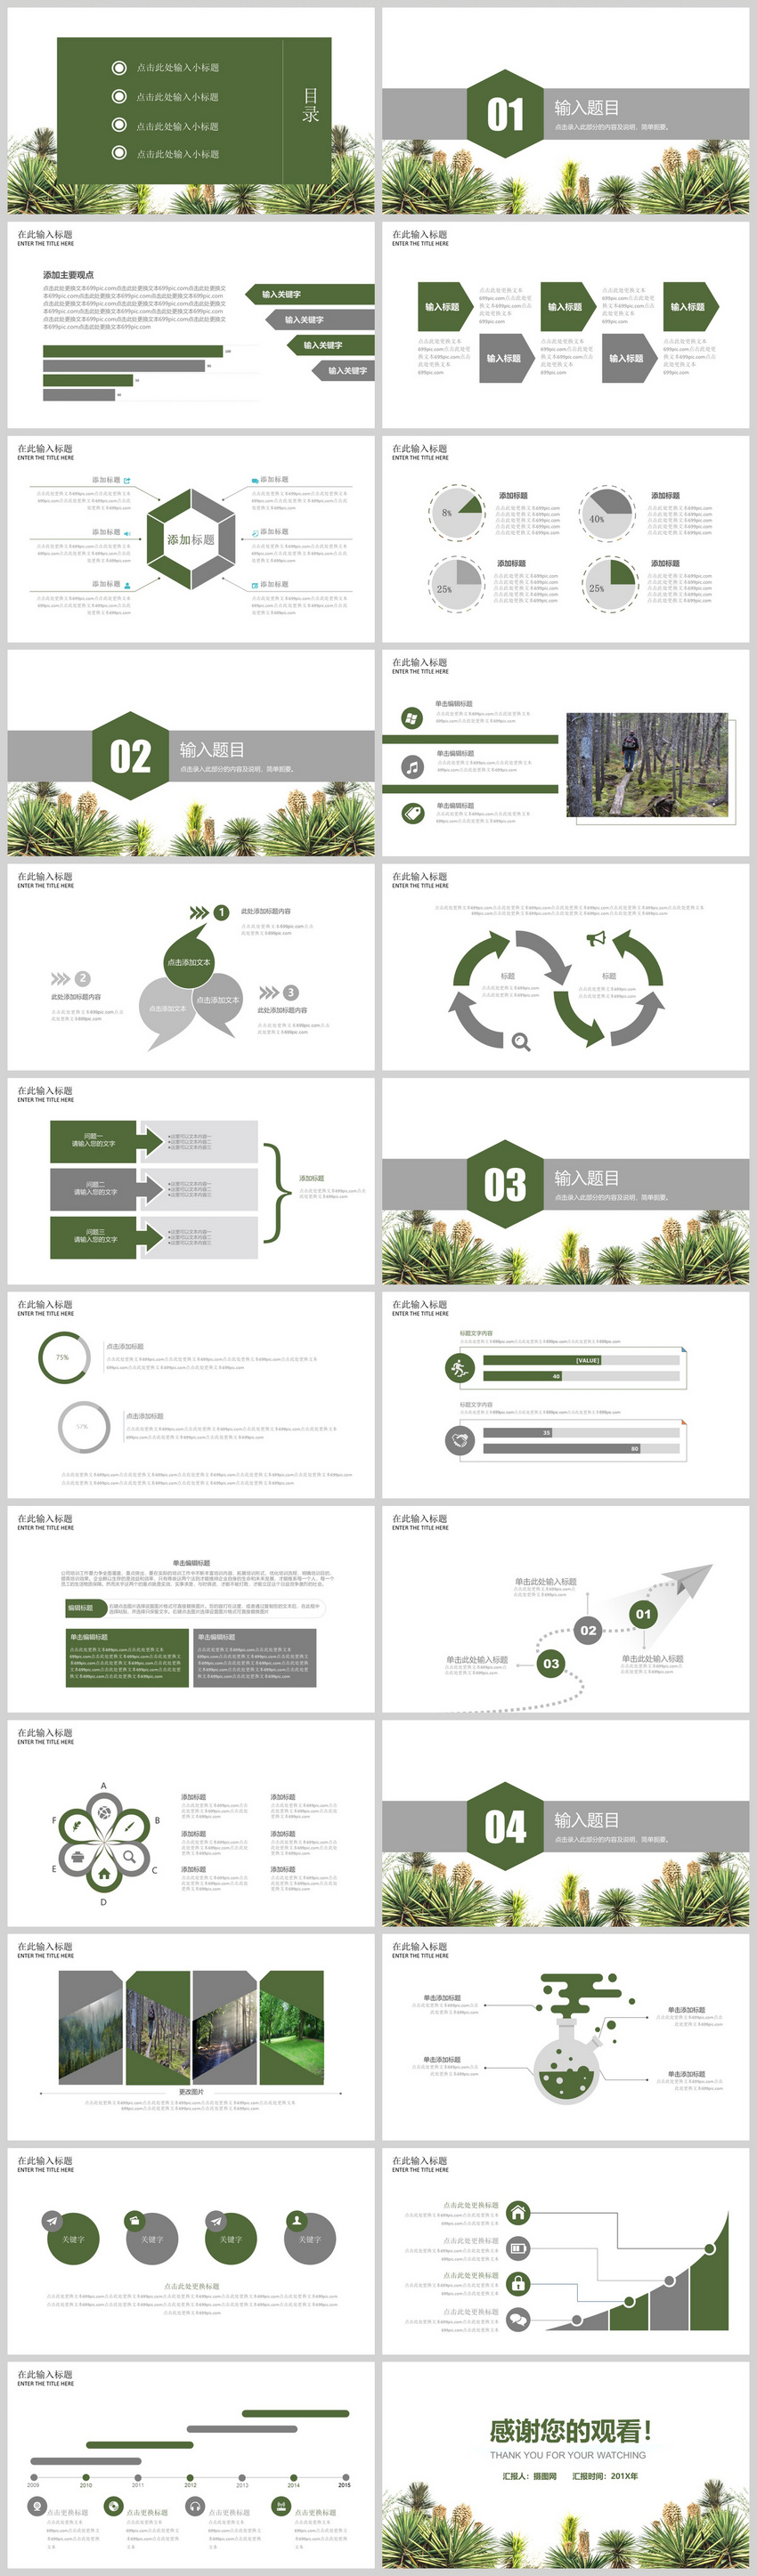 Green energy saving and environmental protection ppt template ...